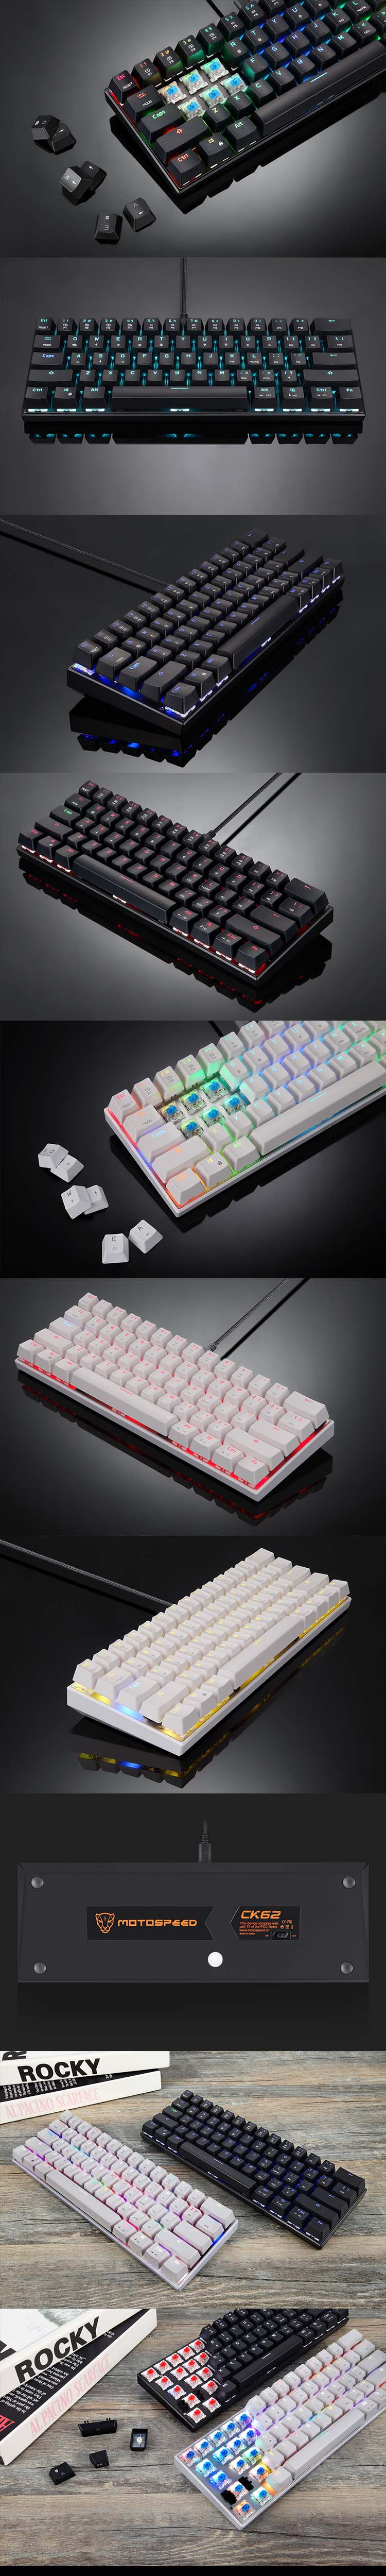 Ck62 Rgb Wired Bluetooth Dual Mode Mechanical Keyboard Mechanical Keyboard Motospeed